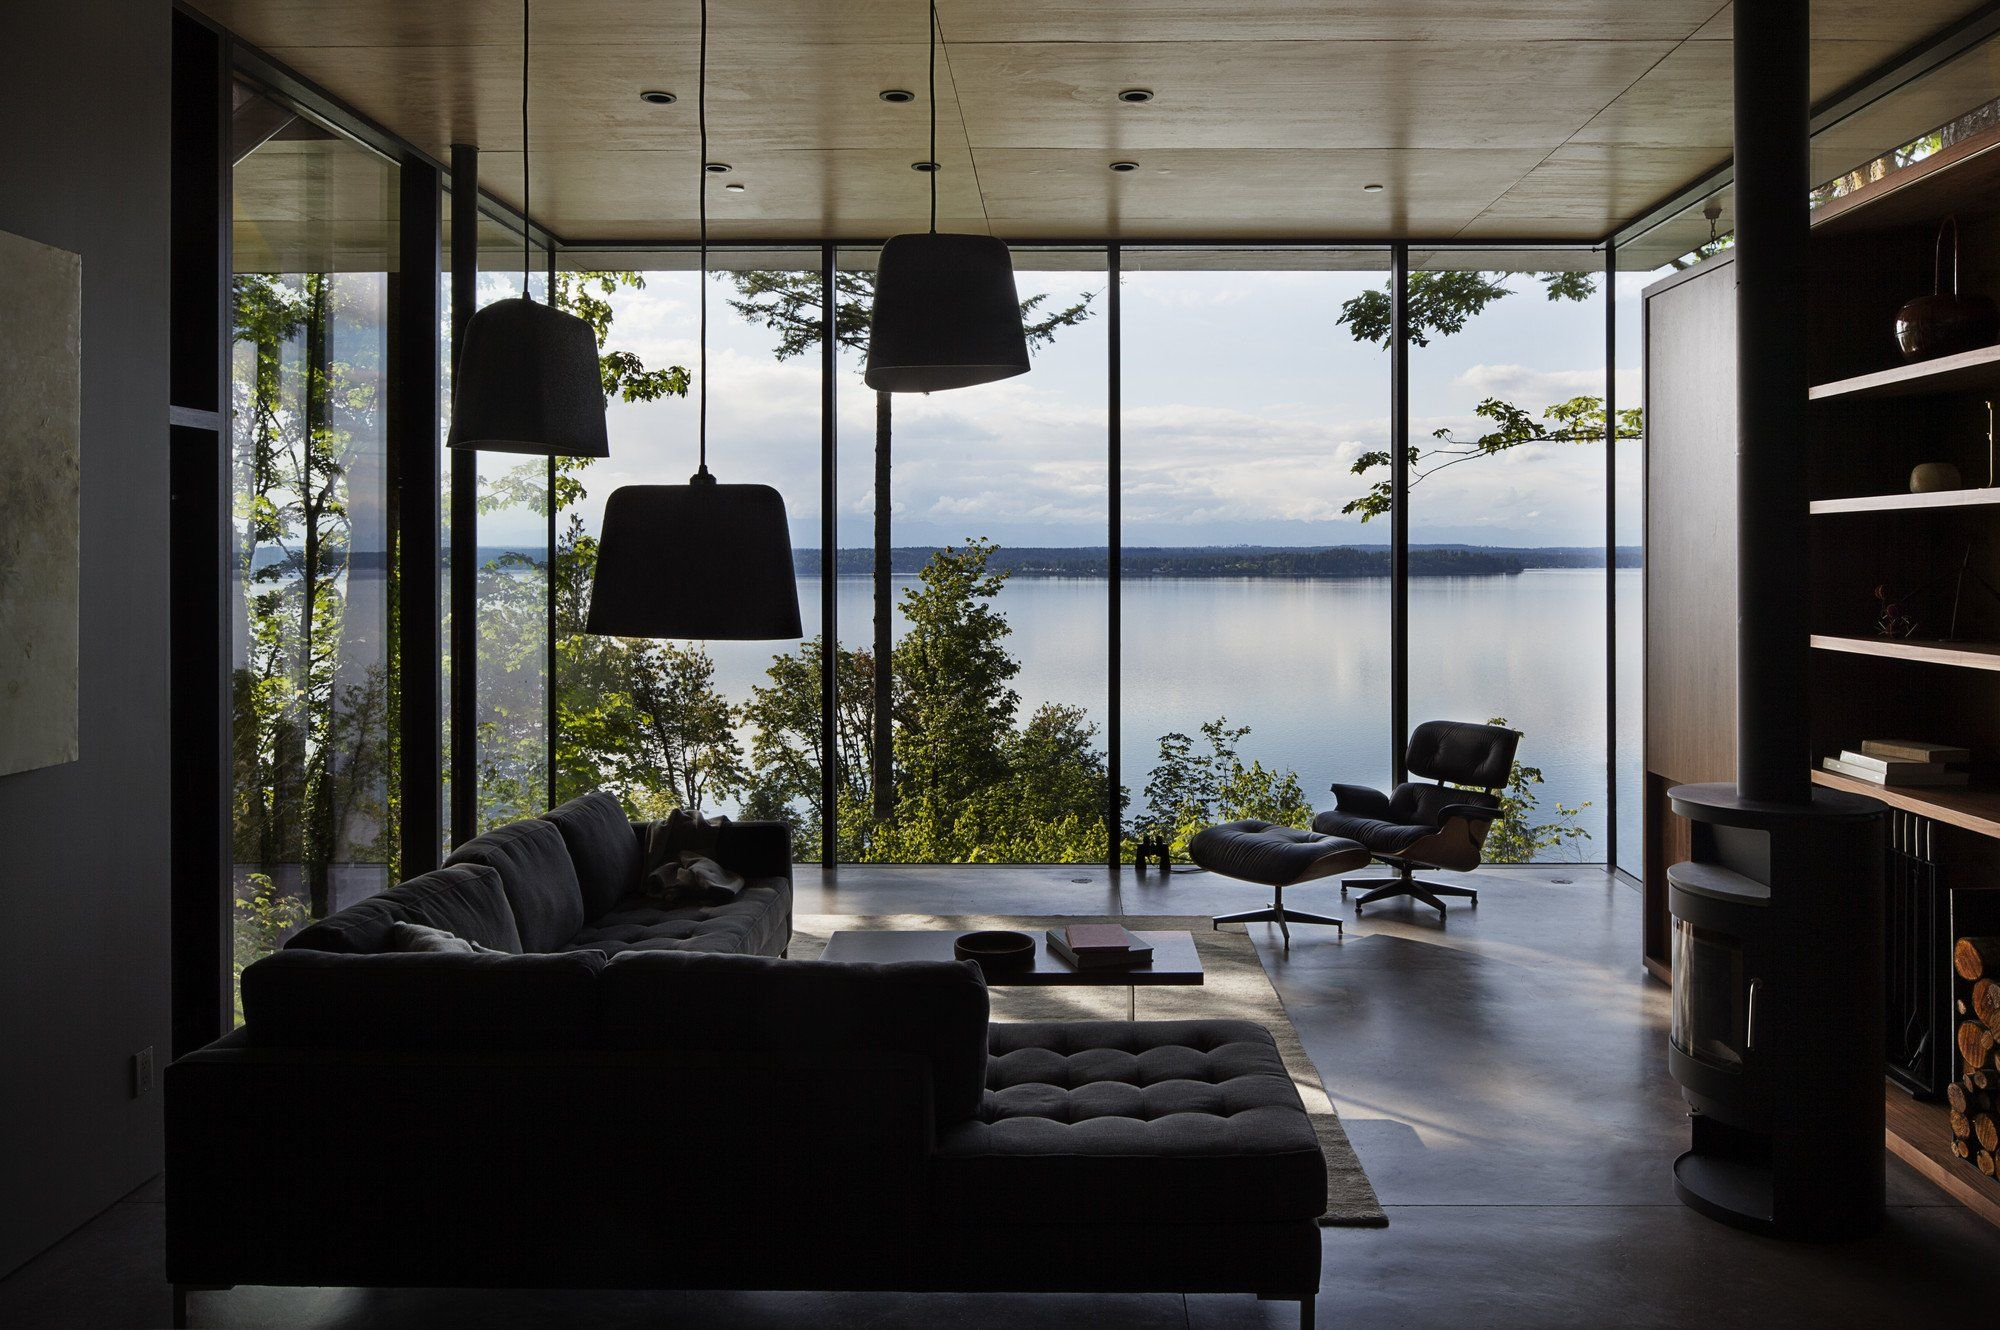 Attractive Home Design Olympia Wa Part - 5: Living Room With A View, Located Near Olympia, Washington [2000 × 1330]